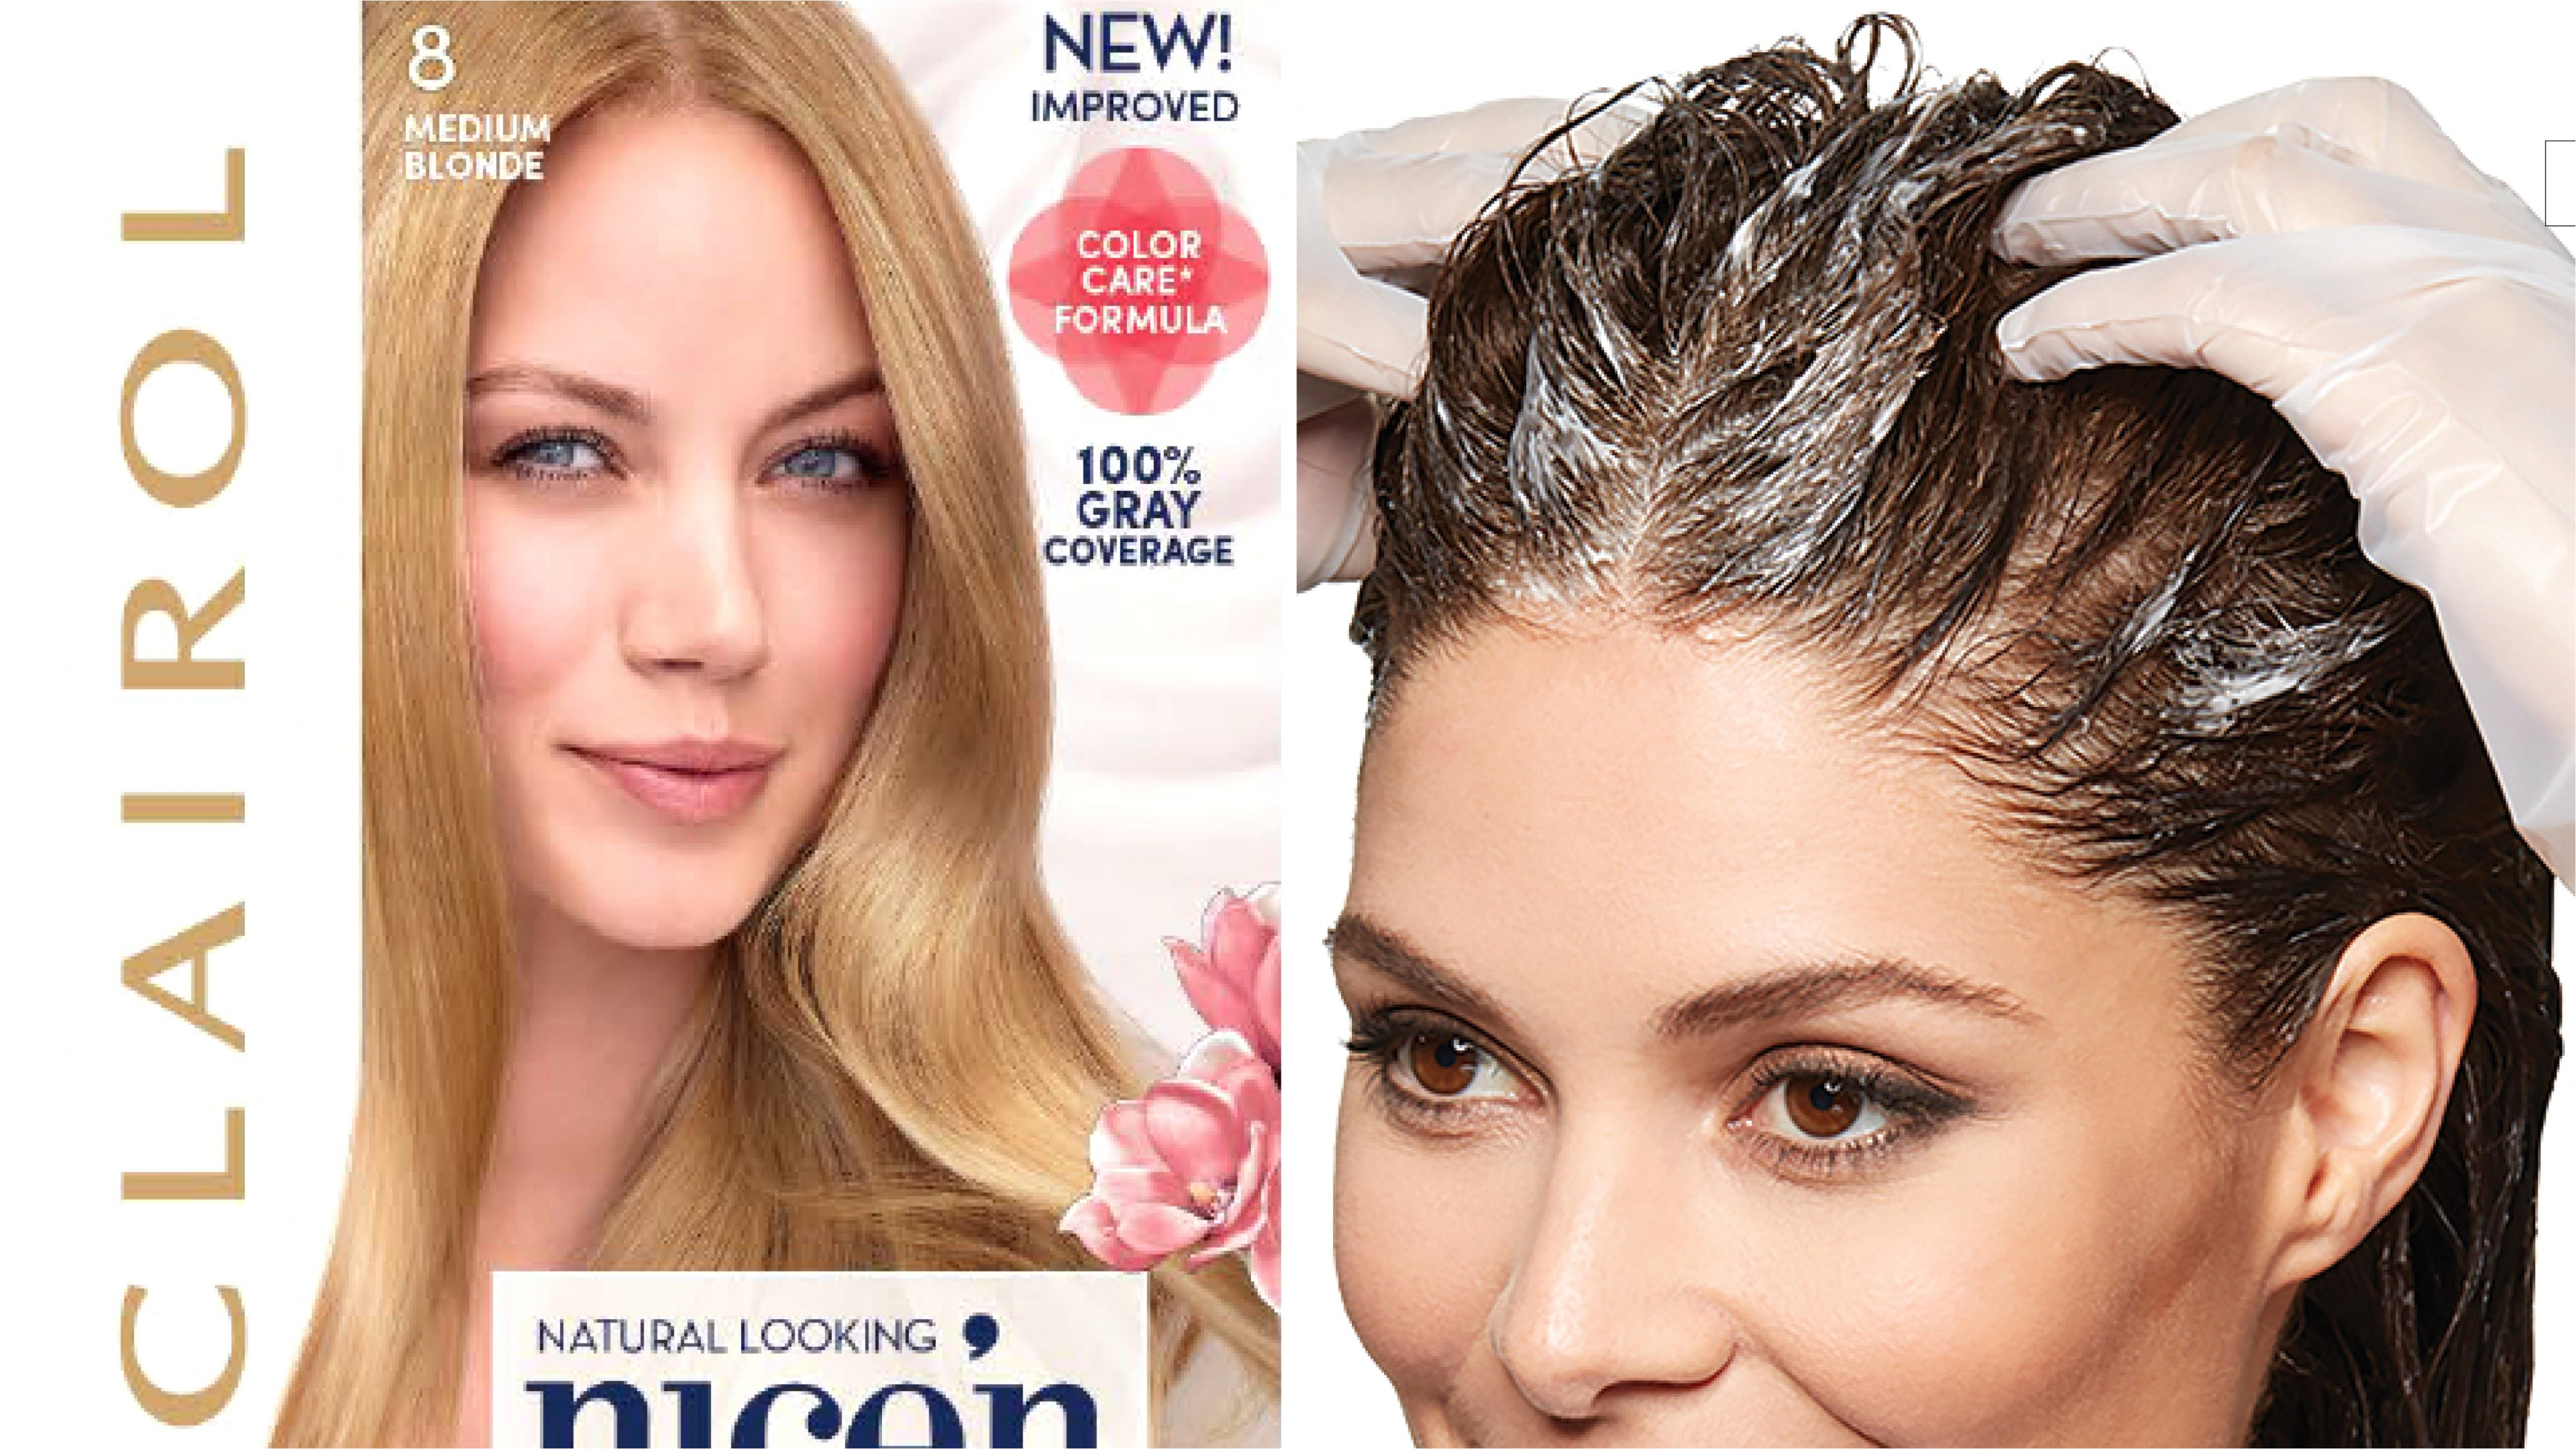 Hair Dye Styles Beautiful I Pinimg 1200x 0d 60 8a 0d608a58a4bb3ed3b As Well Straight Hair Types Download Hair Styles Long and Short